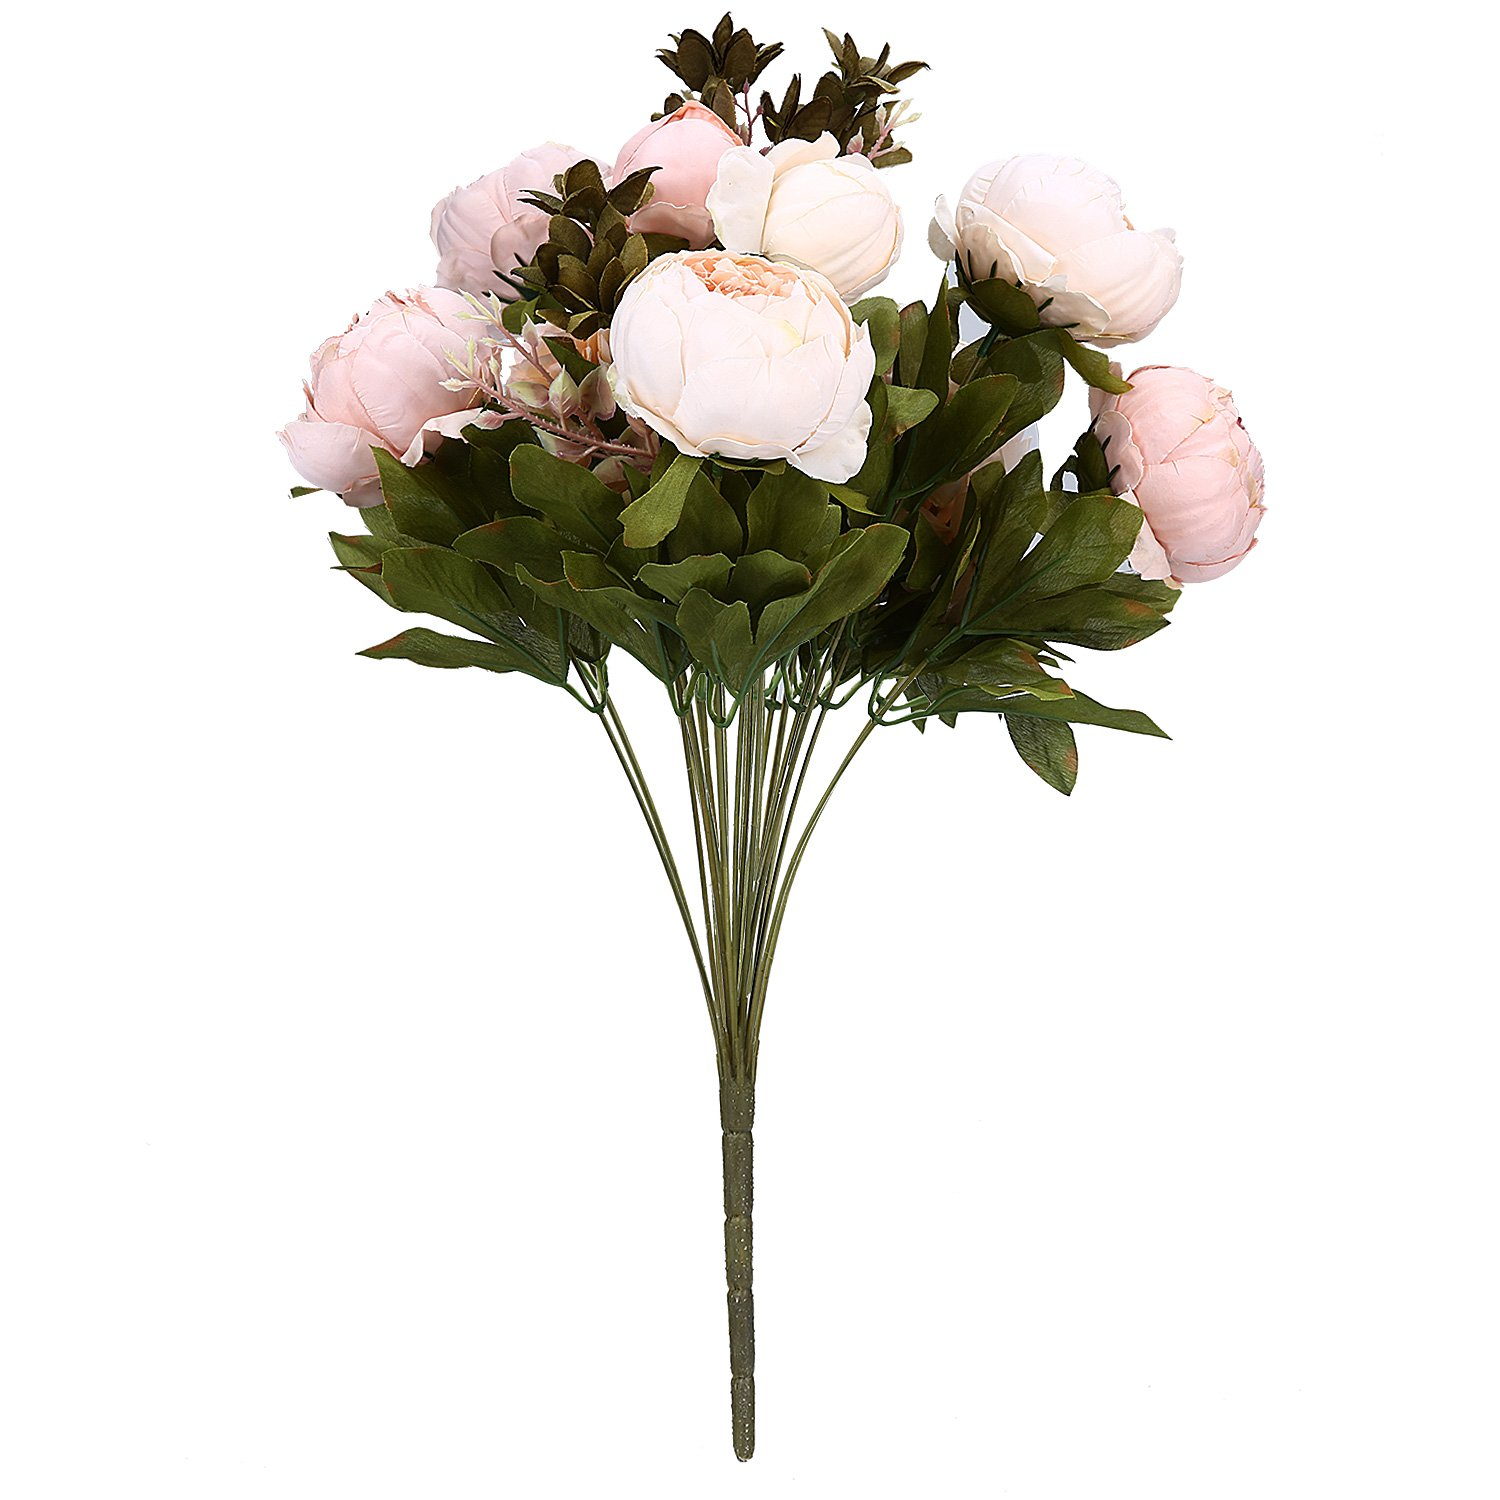 Niceeshoptm european style 1 bouquets artificial peony silk niceeshoptm european style 1 bouquets artificial peony silk flowers home wedding decorationlight pink amazon kitchen home izmirmasajfo Images